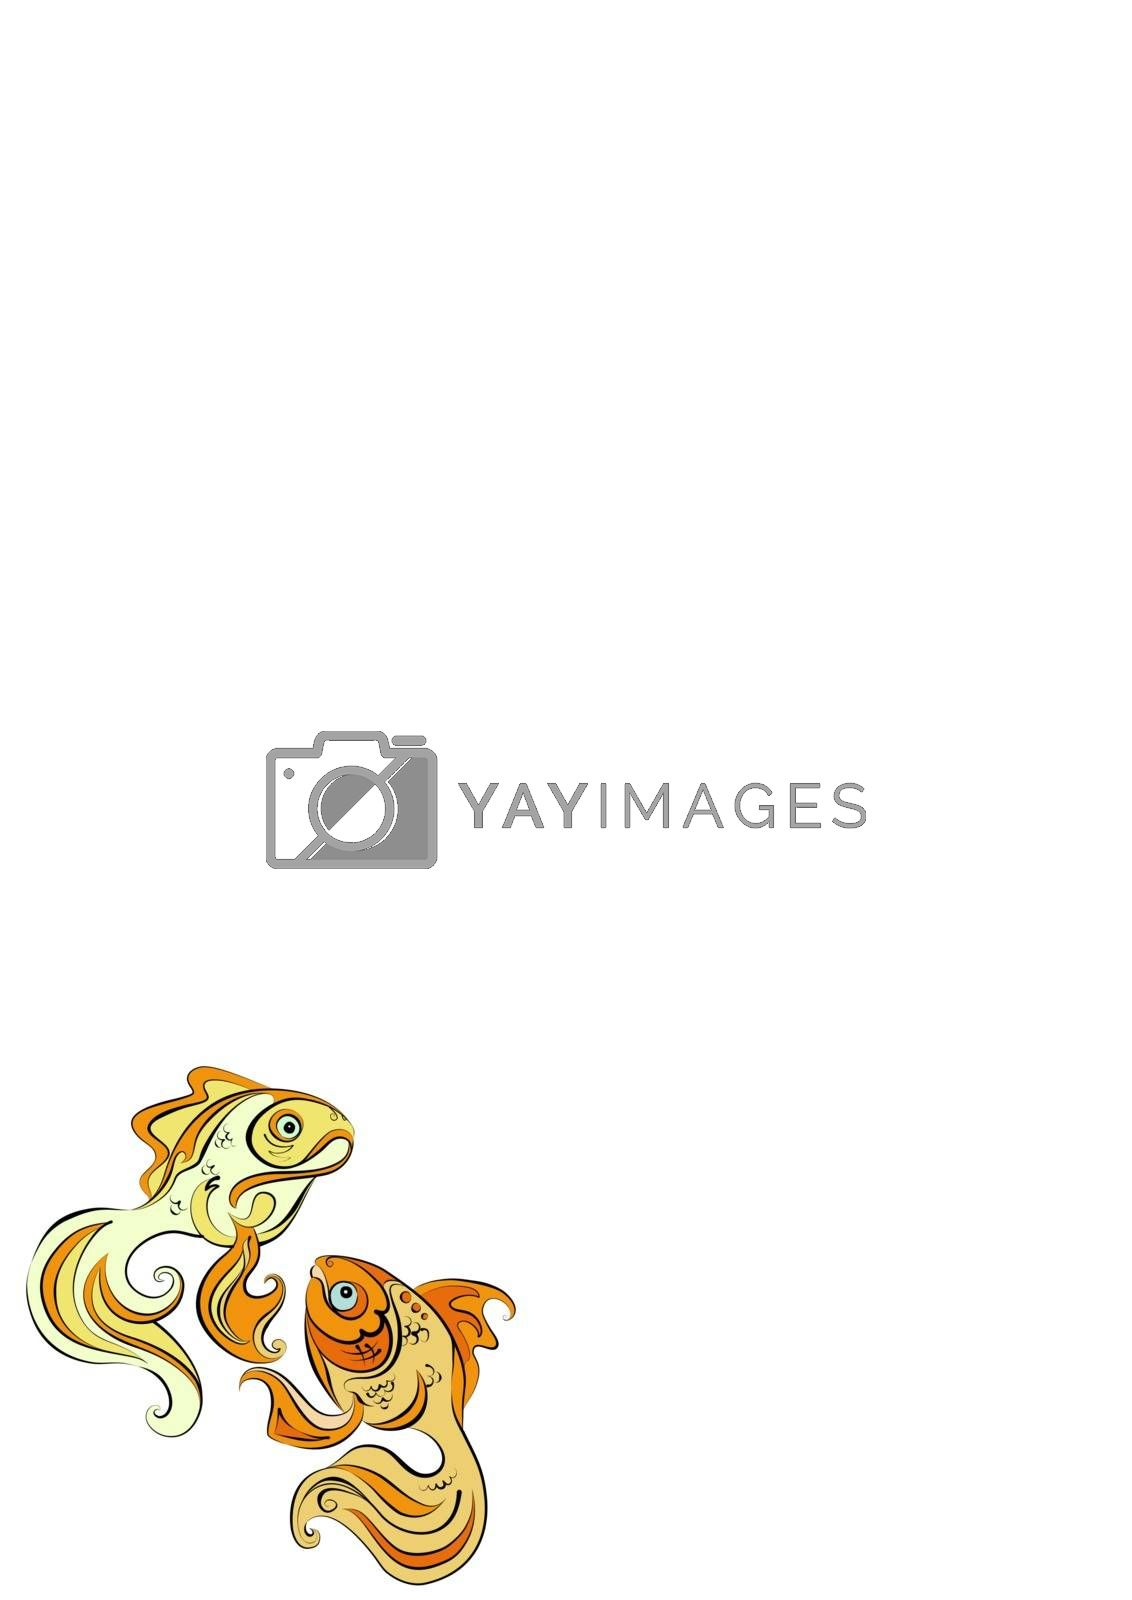 Illustration of two stylized gold fish on white background by Madhourse